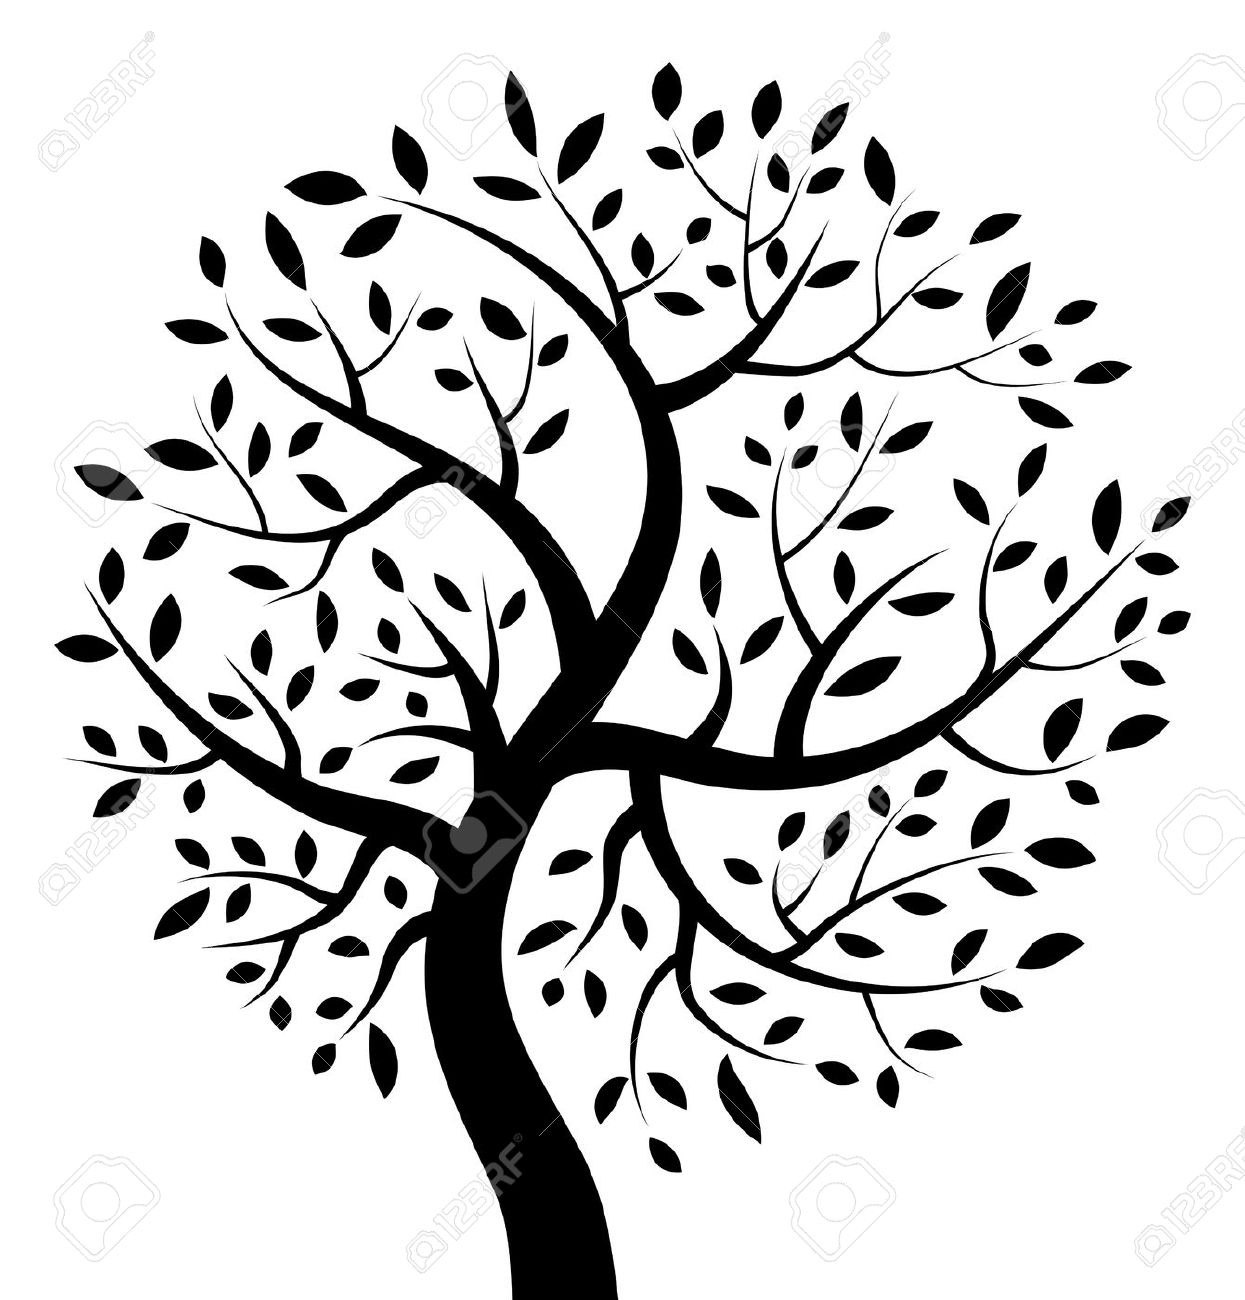 Free clipart images black and white tree clip art library library Family Tree Clipart Black And White | Free download best Family Tree ... clip art library library